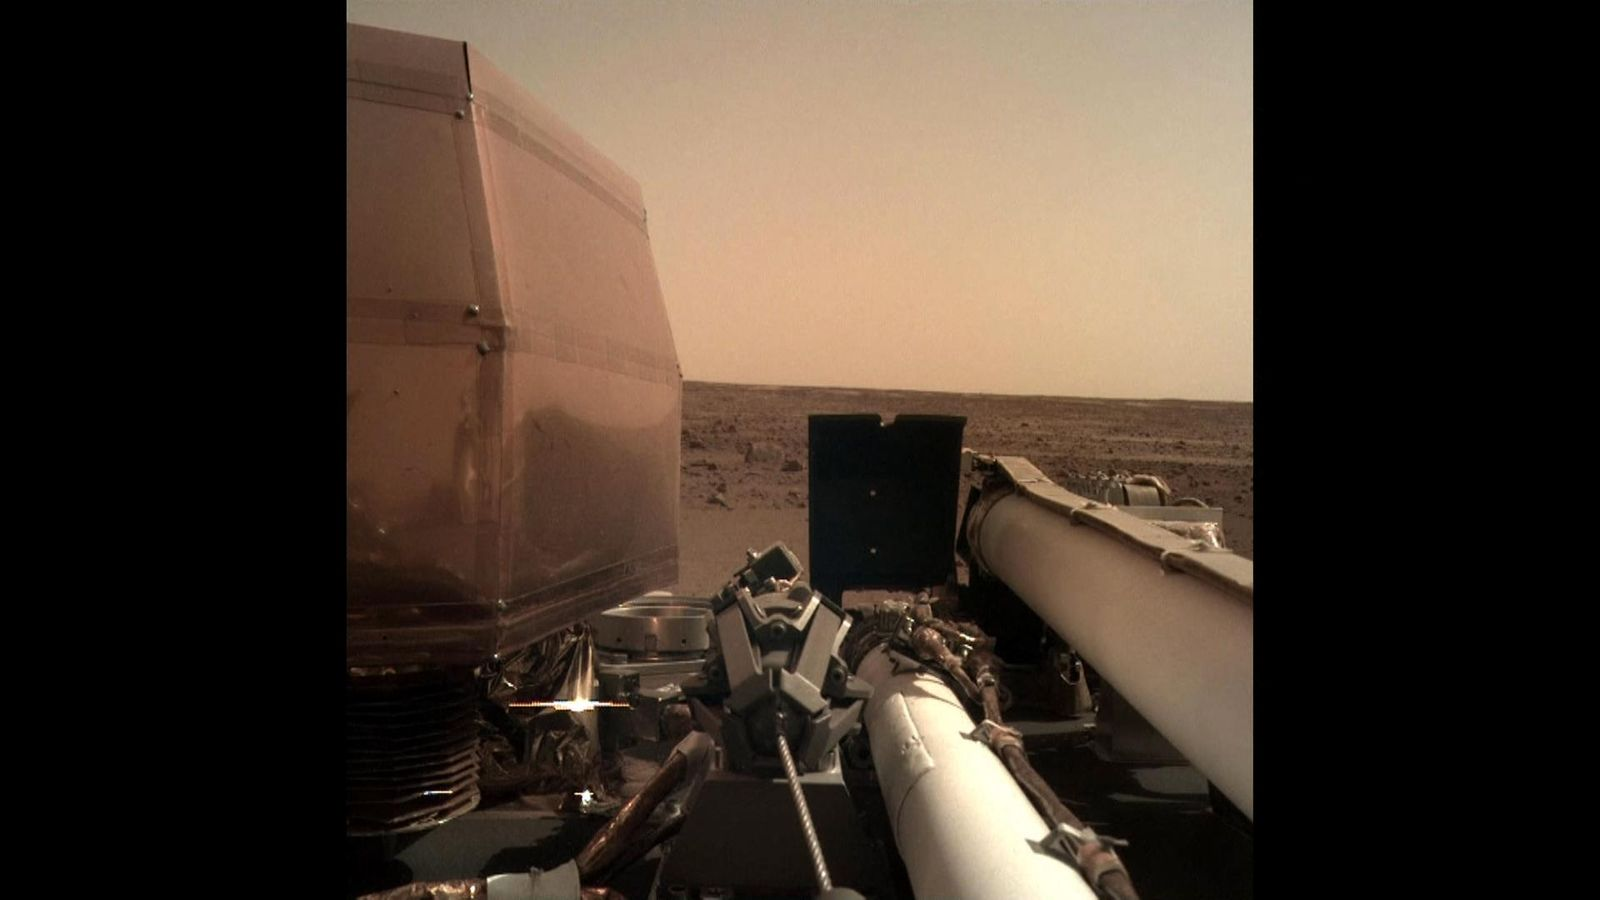 mars rover insight photos - photo #16